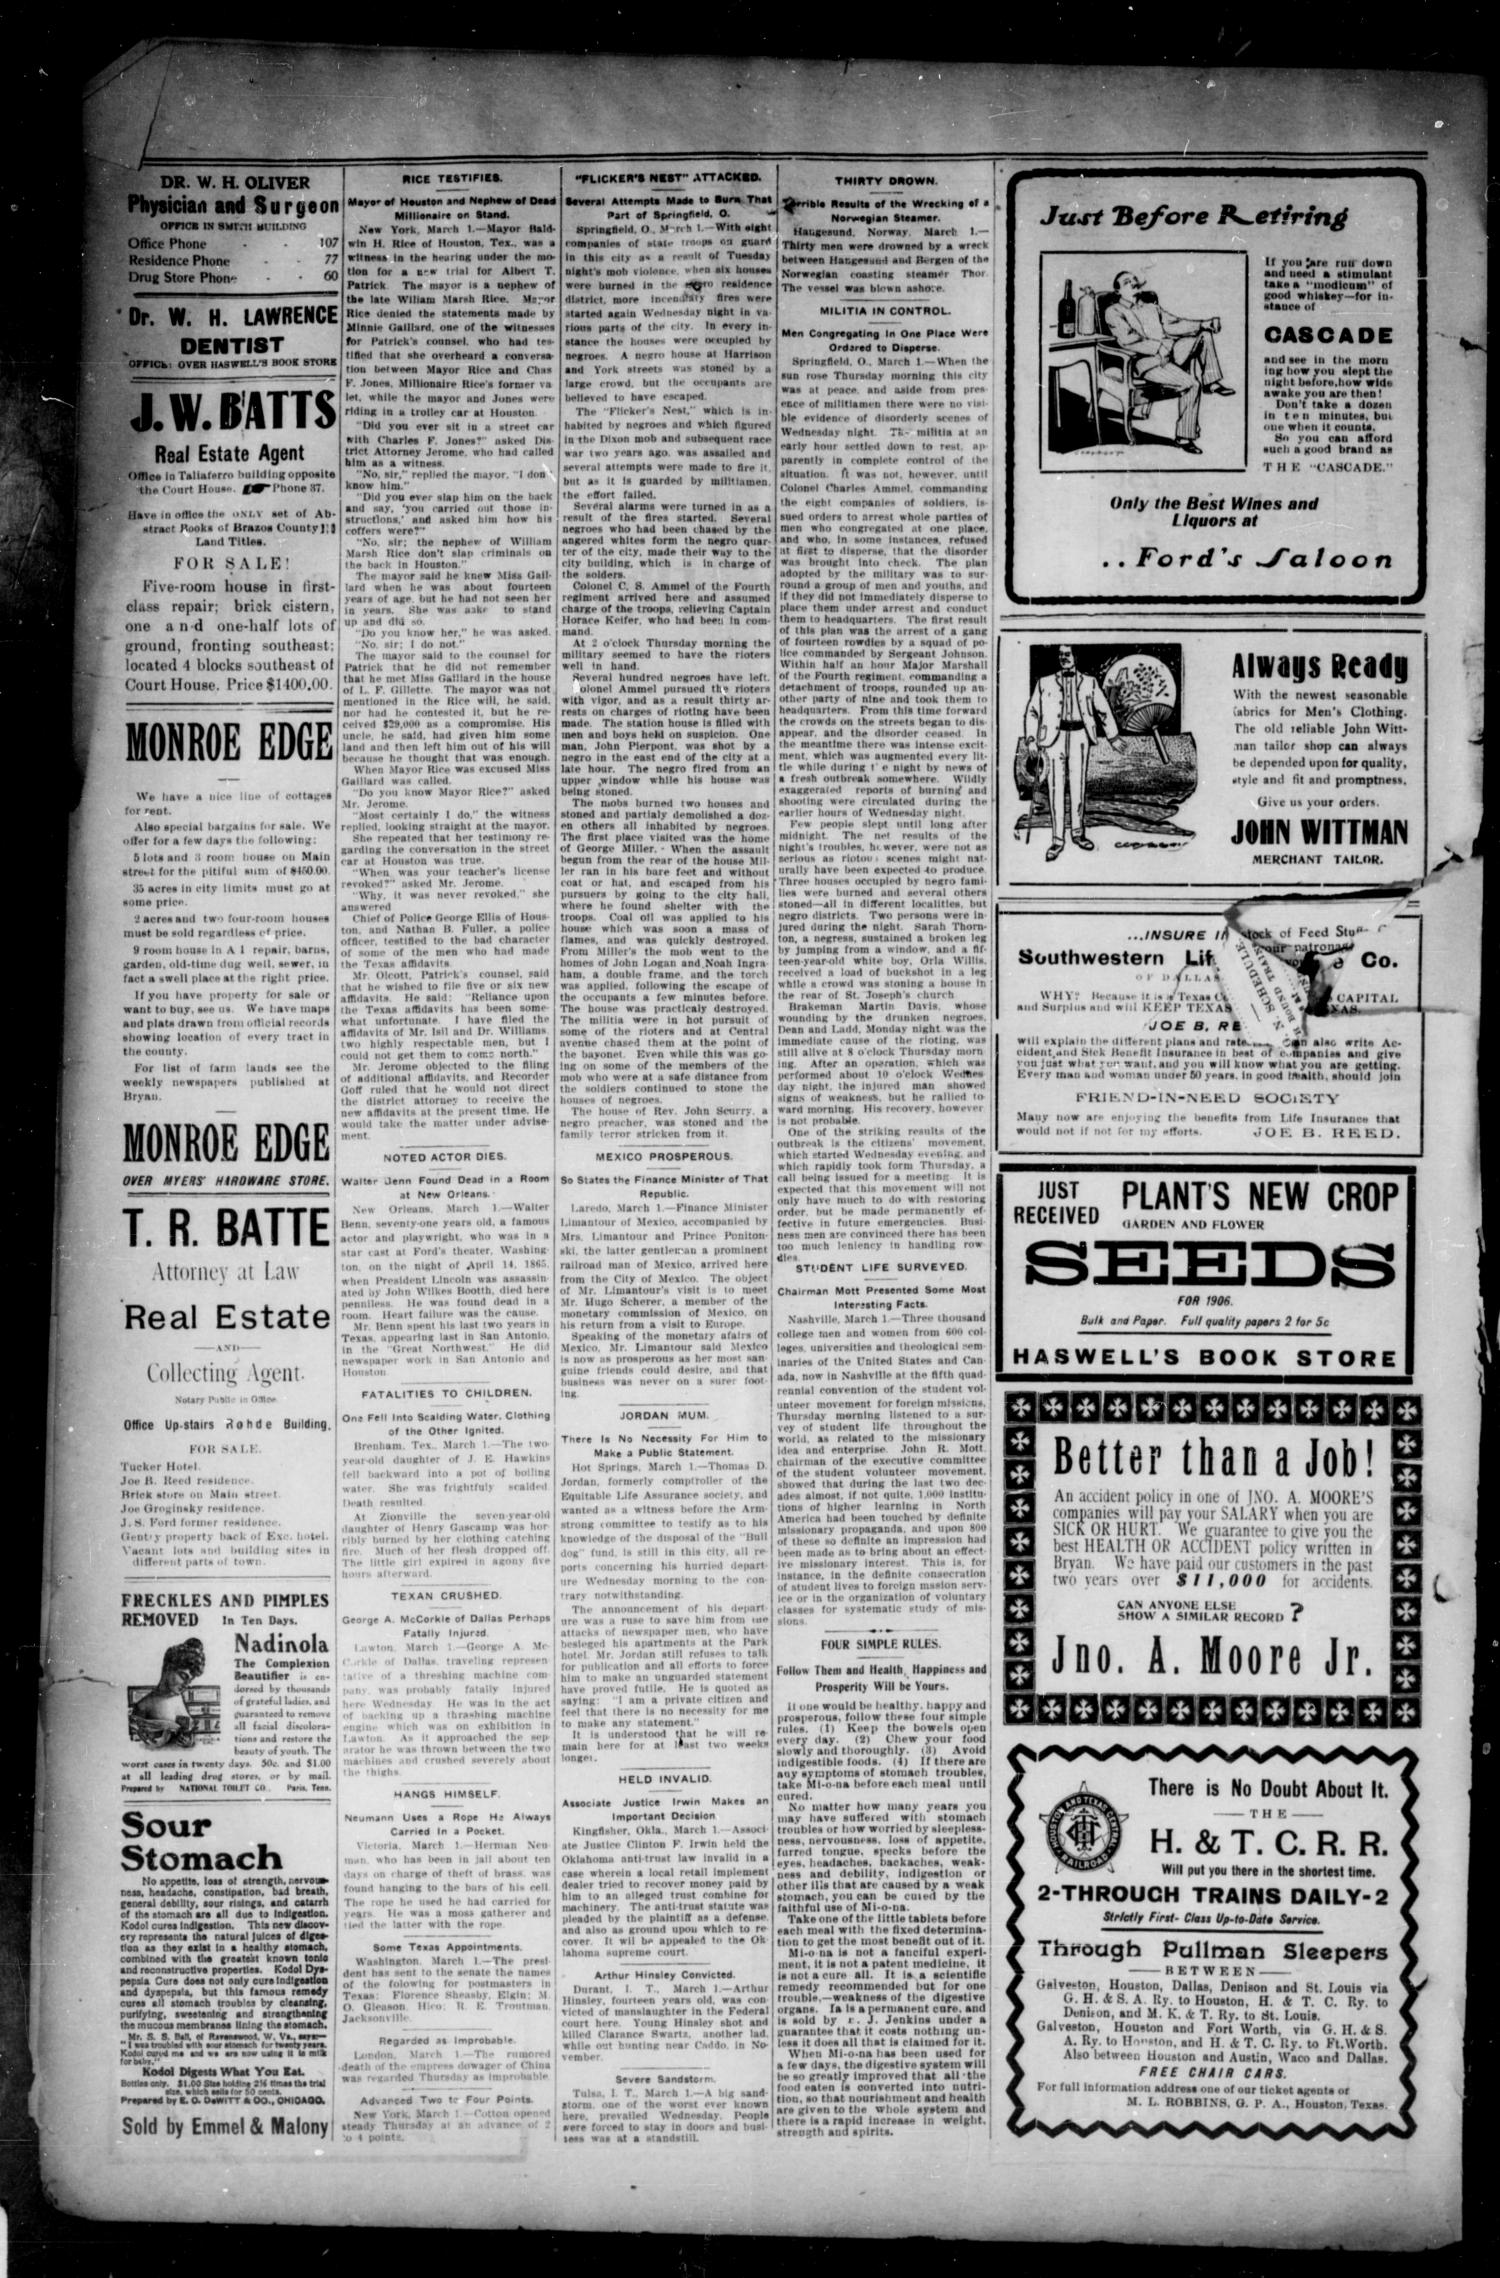 Bryan Morning Eagle. (Bryan, Tex.), Vol. ELEVENTH YEAR, No. 73, Ed. 1 Friday, March 2, 1906                                                                                                      [Sequence #]: 4 of 4